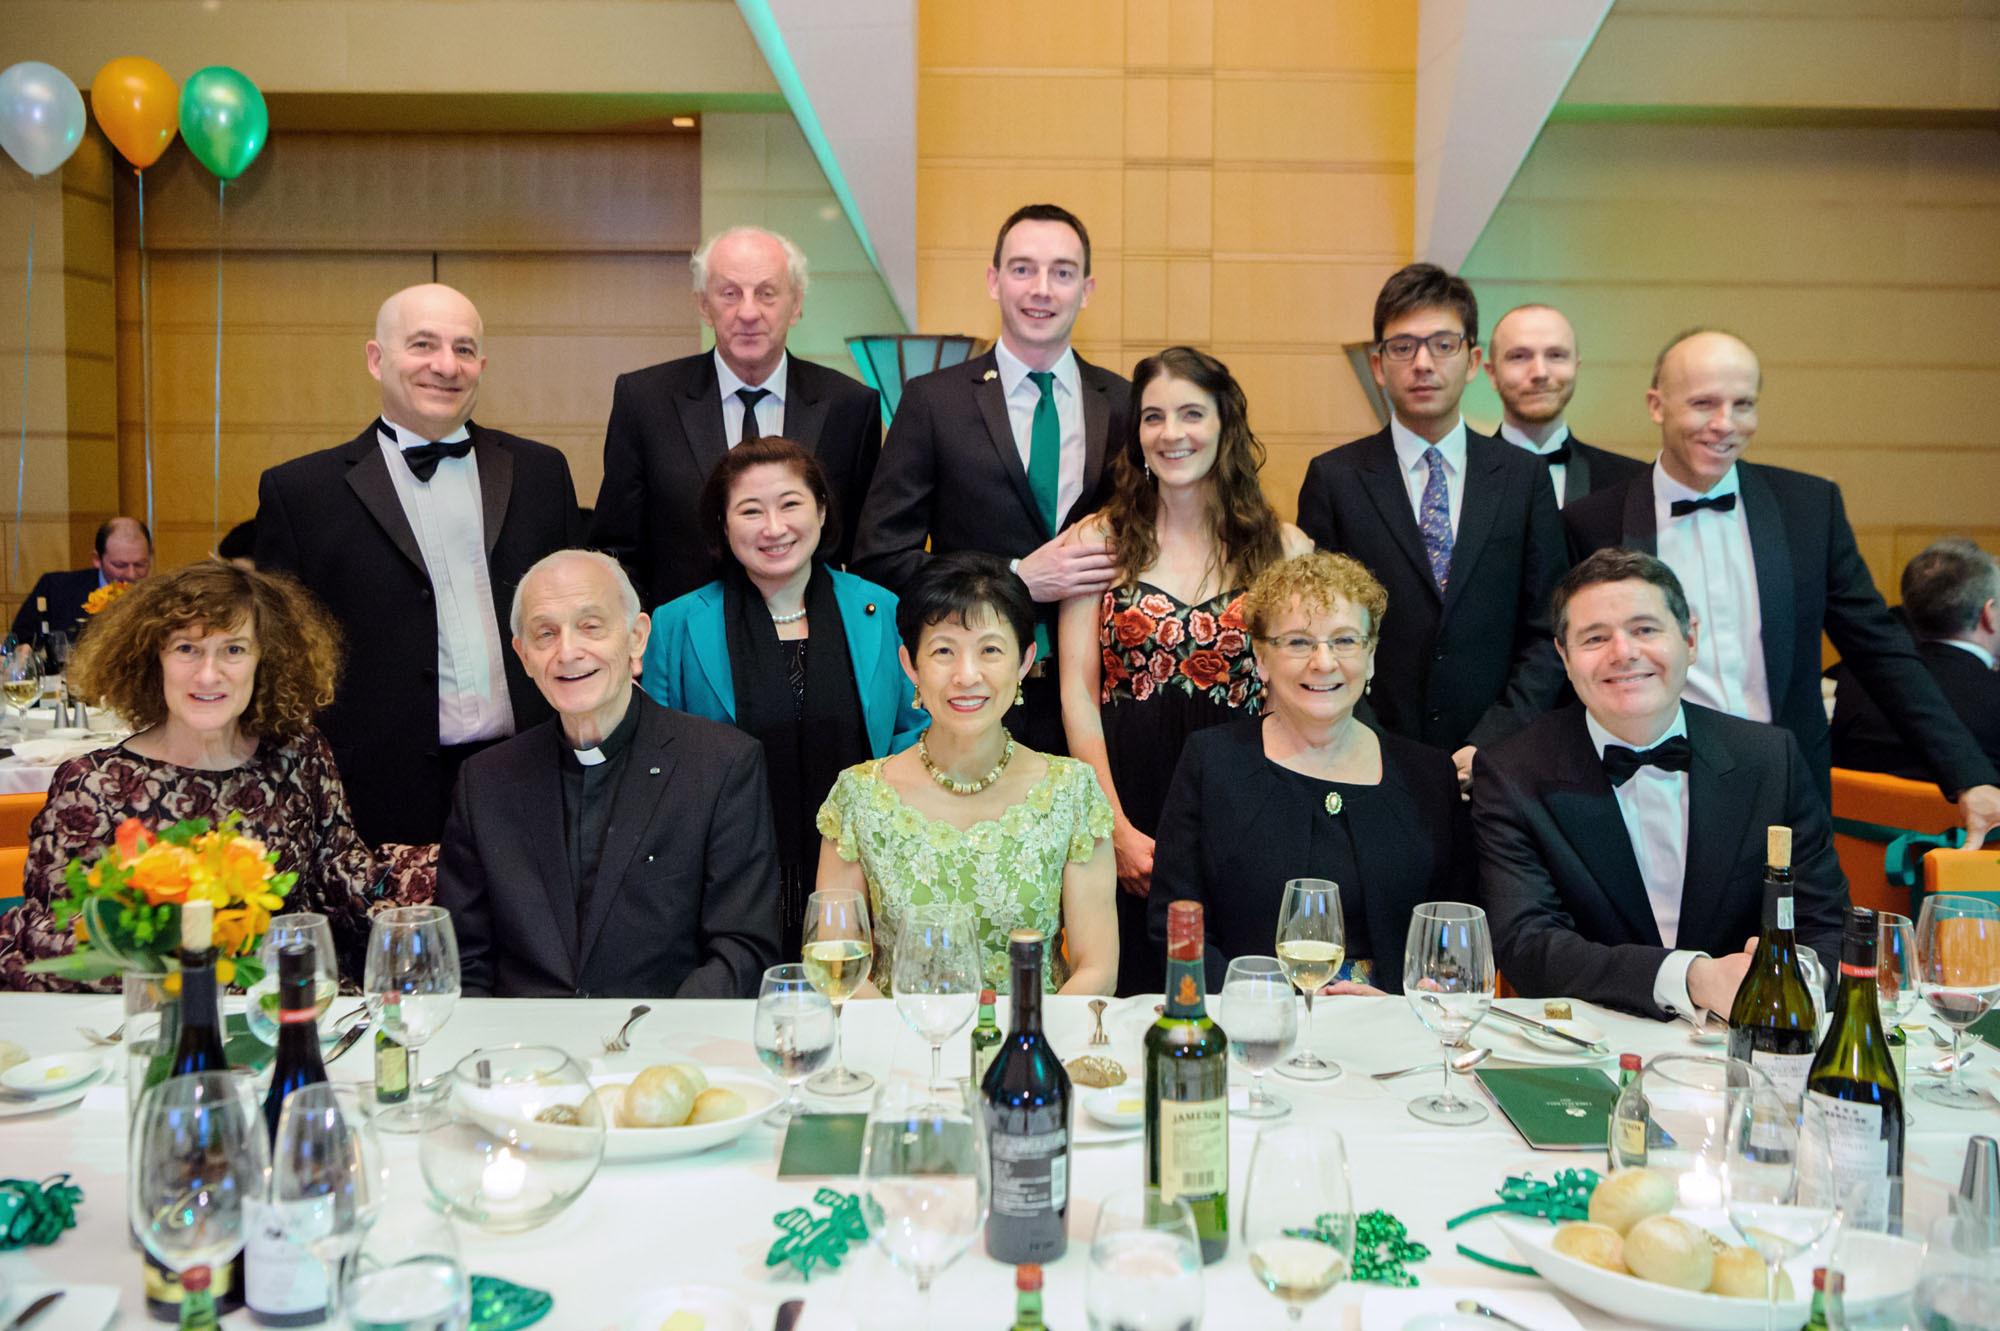 Princess Takamado (front row, center), Irish Ambassador Anne Barrington (front row, second from right), Irish Minister for Public Expenditure and Reform Paschal Donohoe (front row, right) and other guests pose at the Emerald Ball, which raises money for three charities, at the Tokyo American Club, on March 18. | ANTONY TRAN